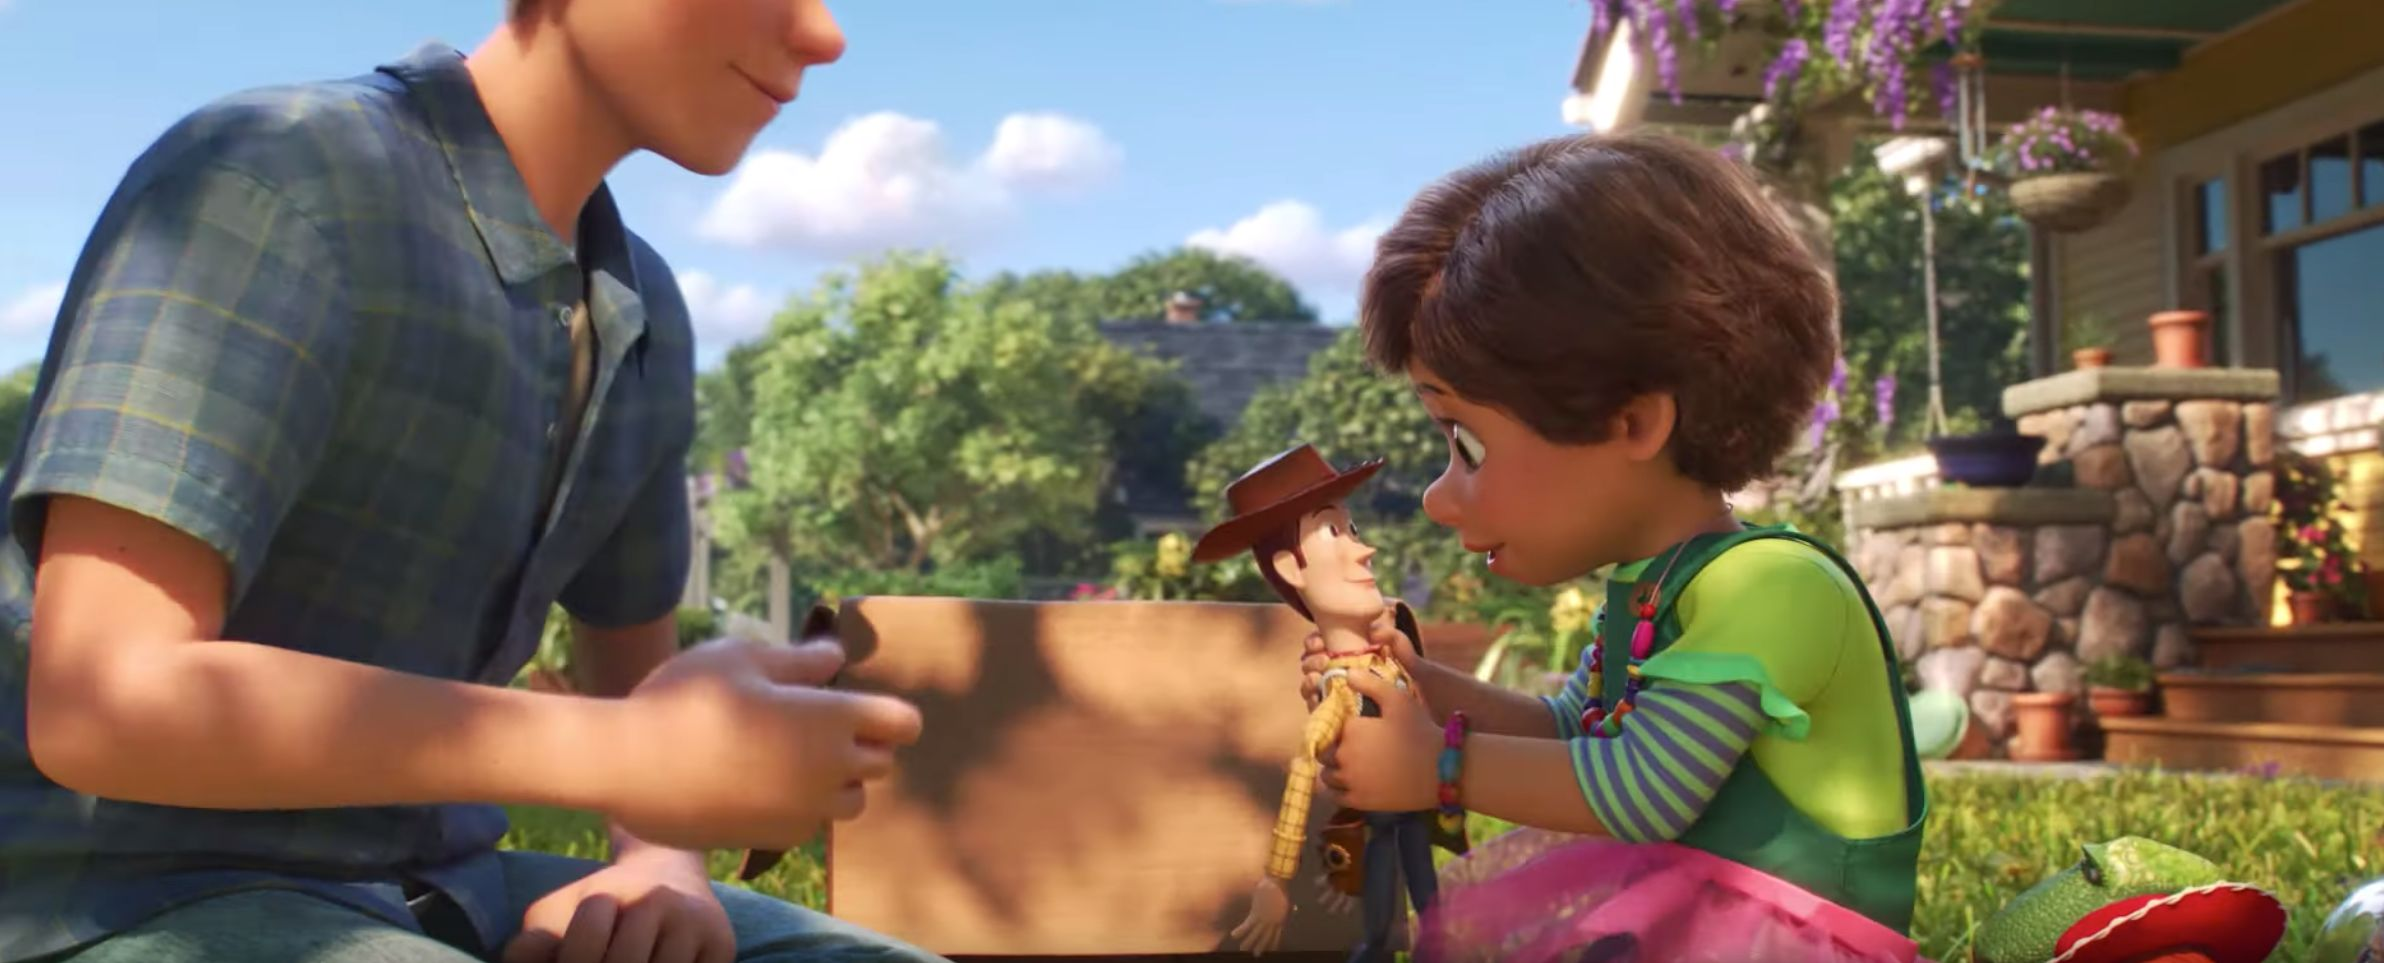 Toy Story 4 Trailer Reveals We're In For Yet Another